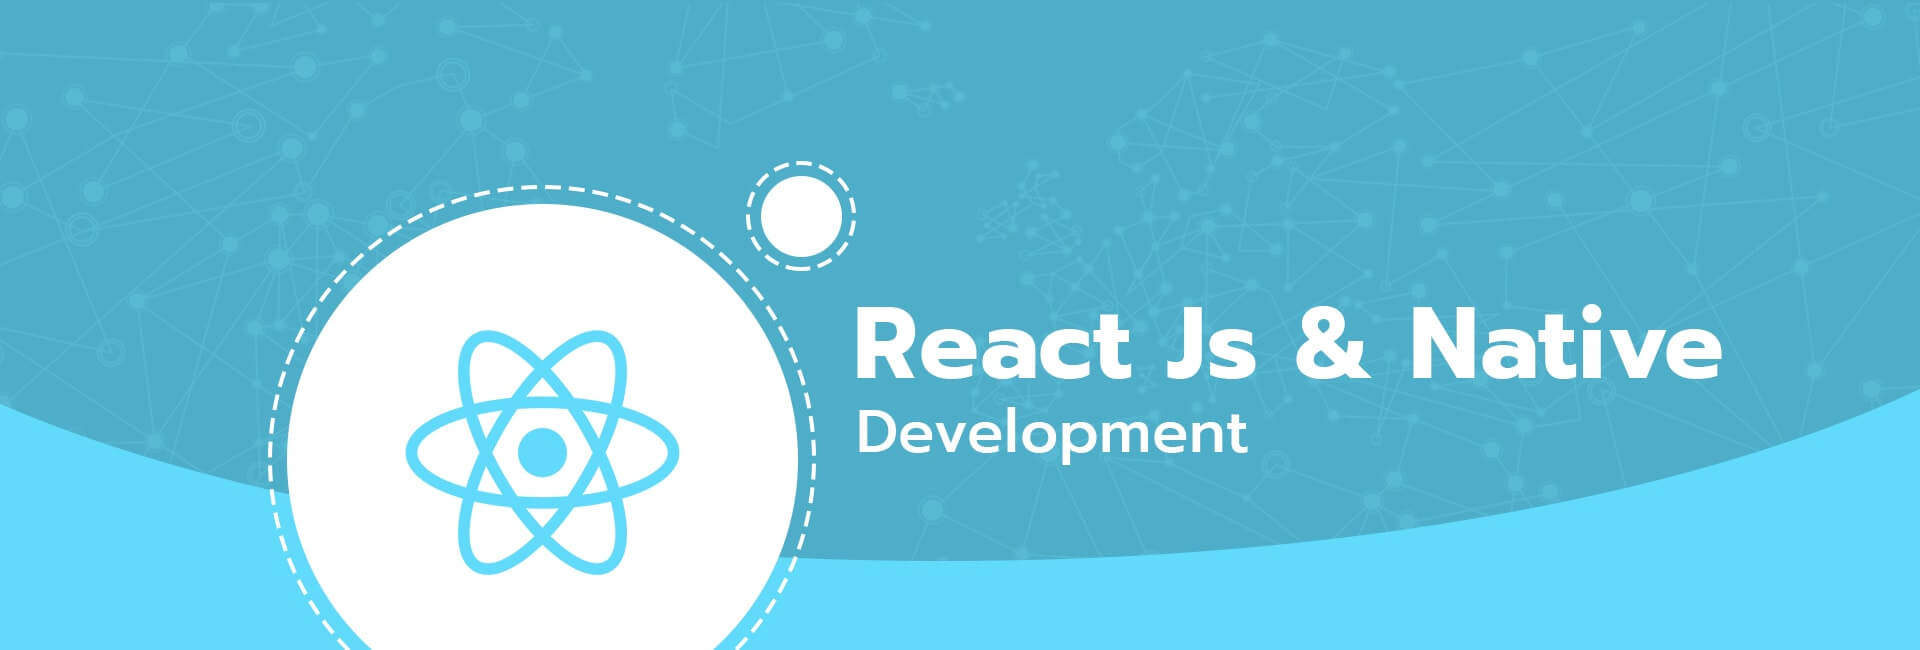 REACT.JS Development India